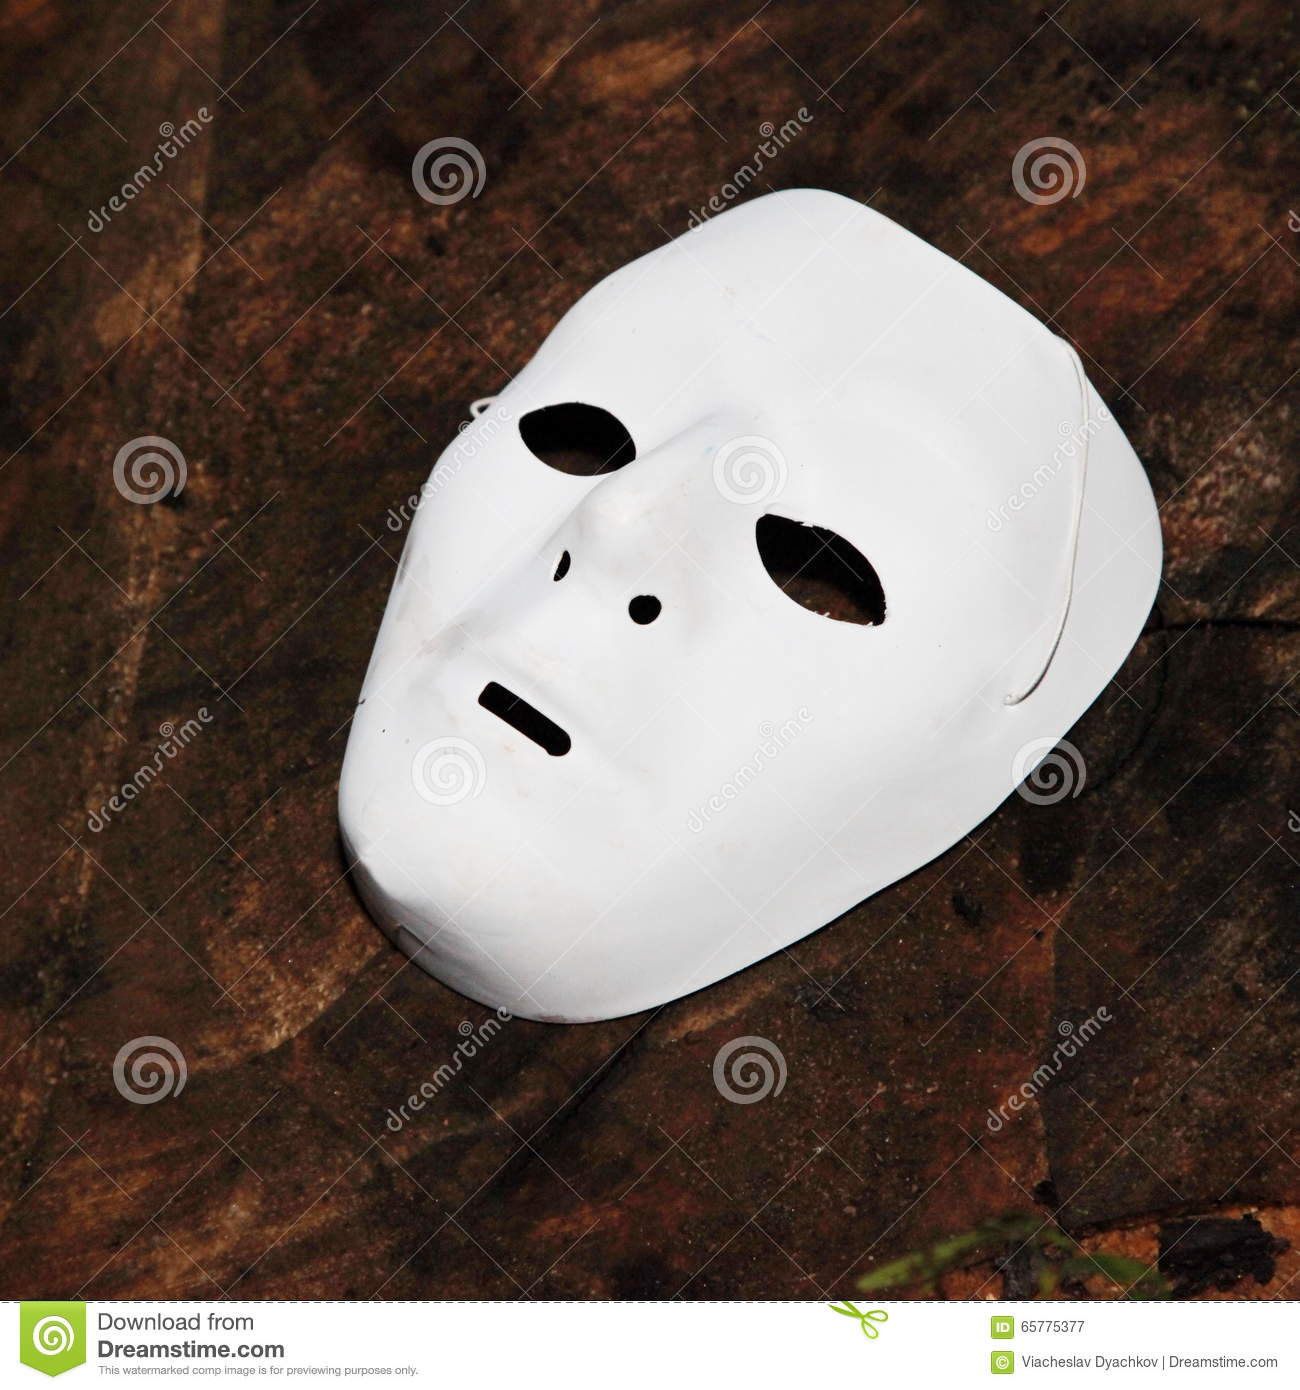 White Face Mask For Halloween Stock Image - Image of alter, face ...